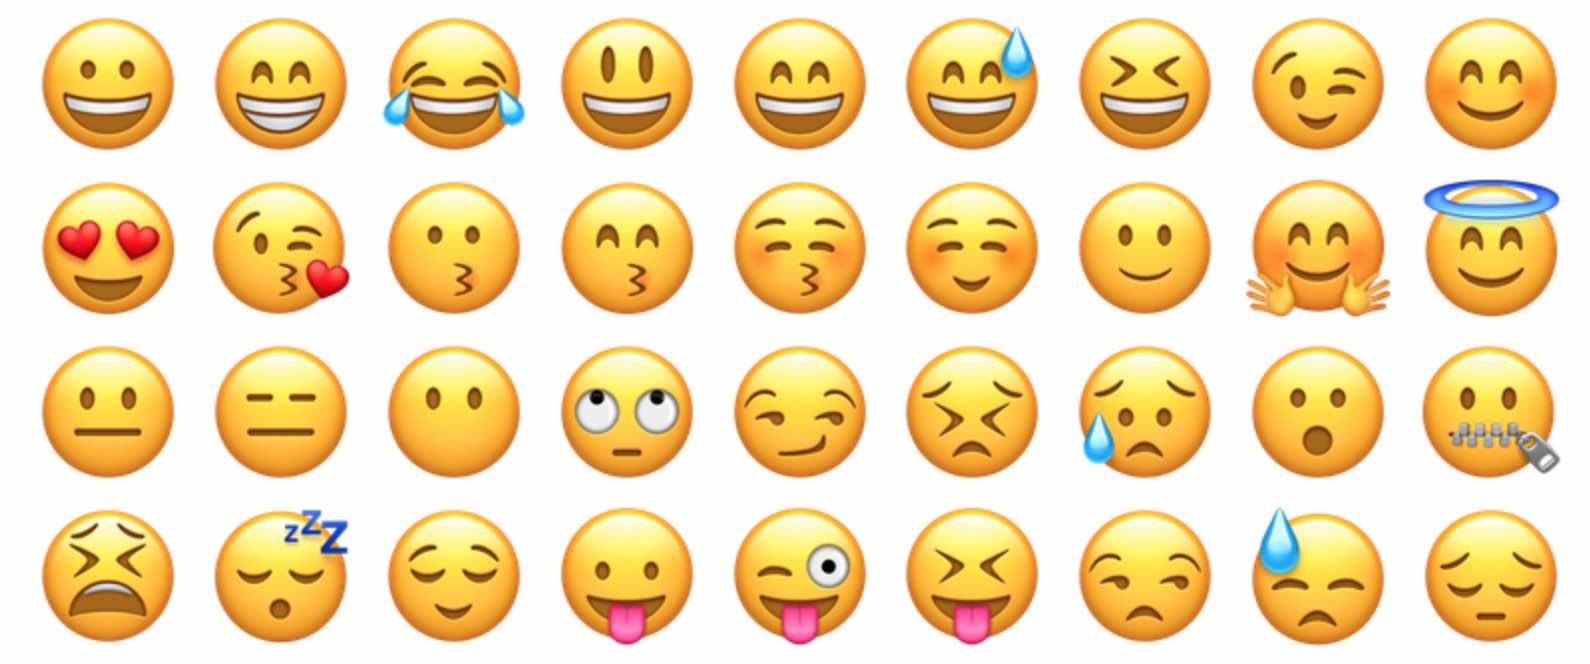 1. Wait until after the first date for flirty emoji.